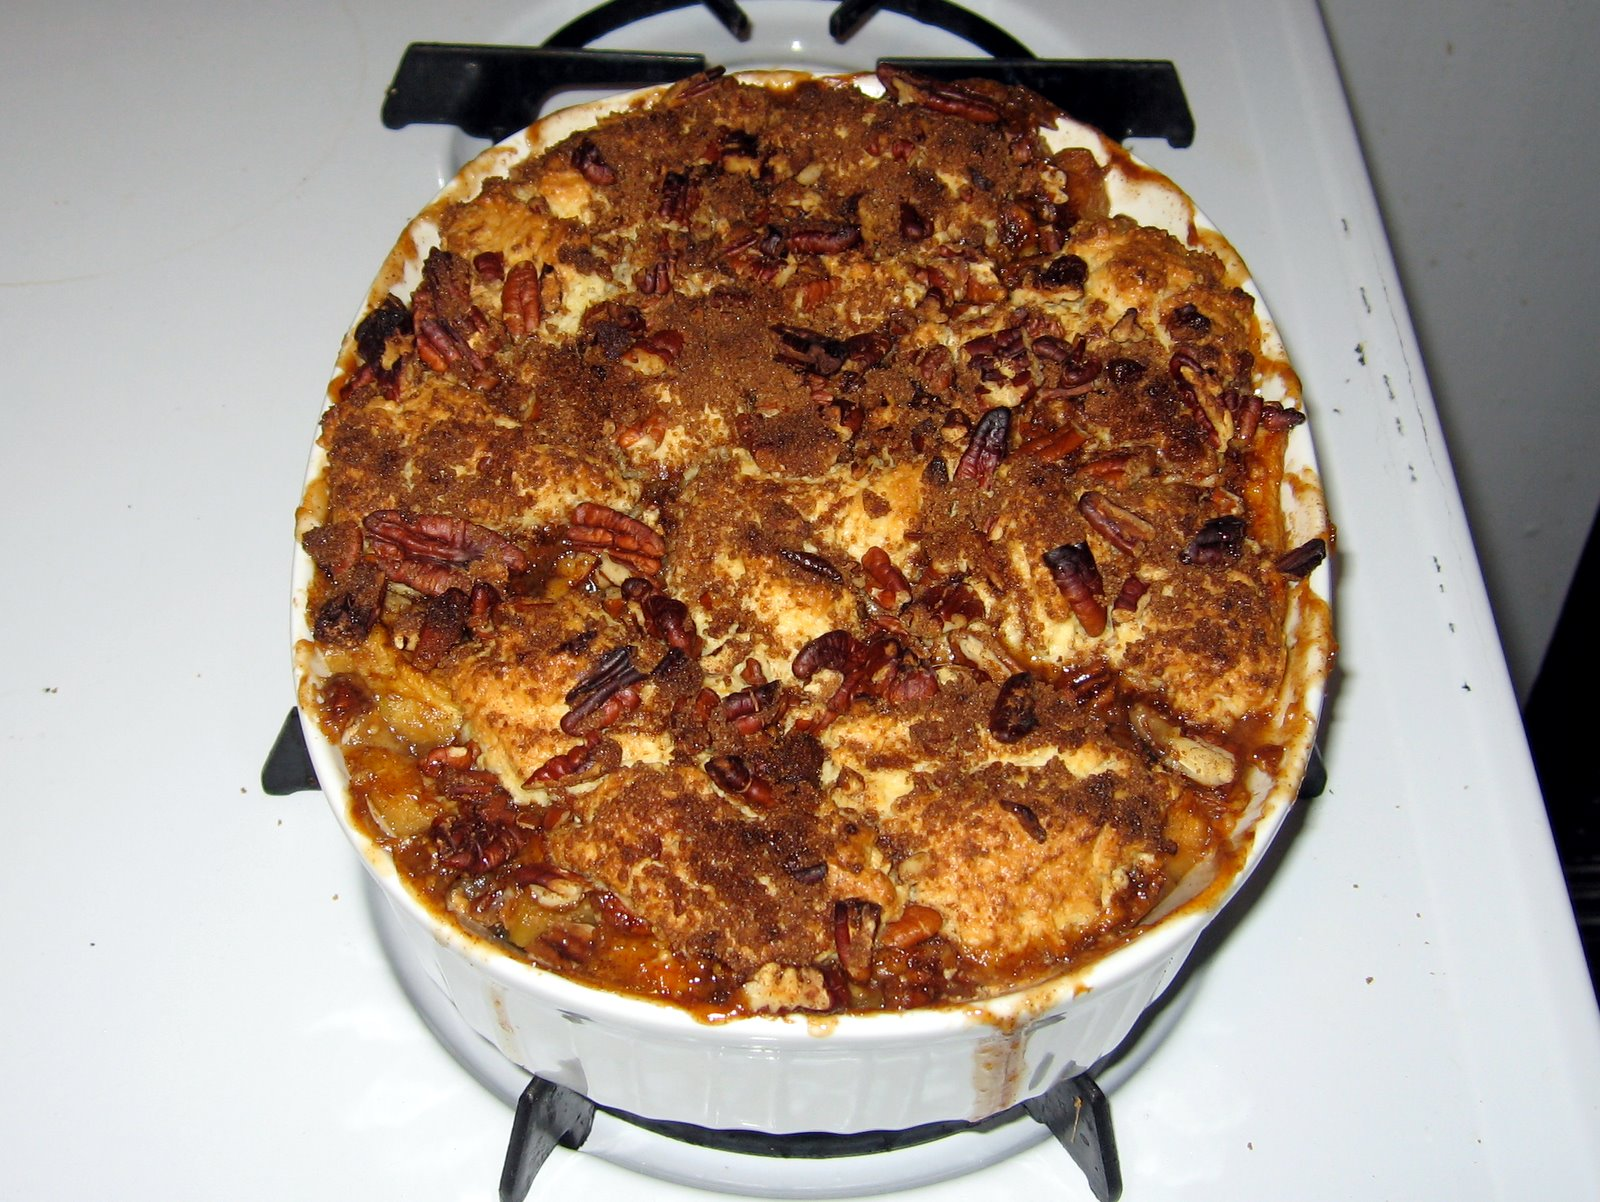 Apple Cobbler With Ice Cream Images & Pictures - Becuo